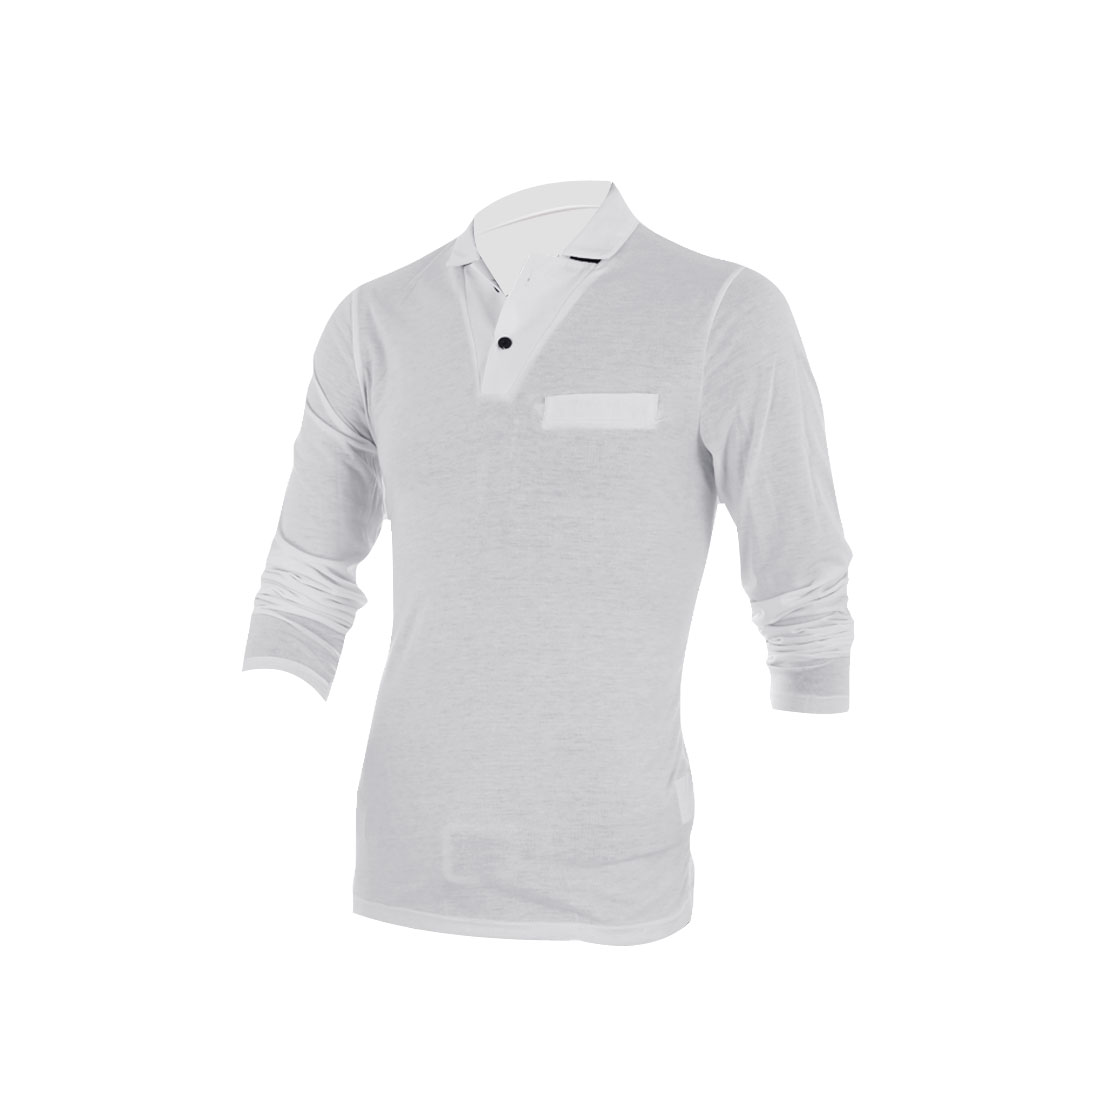 Men Convertible Collar Long Sleeve Polo Shirt White M